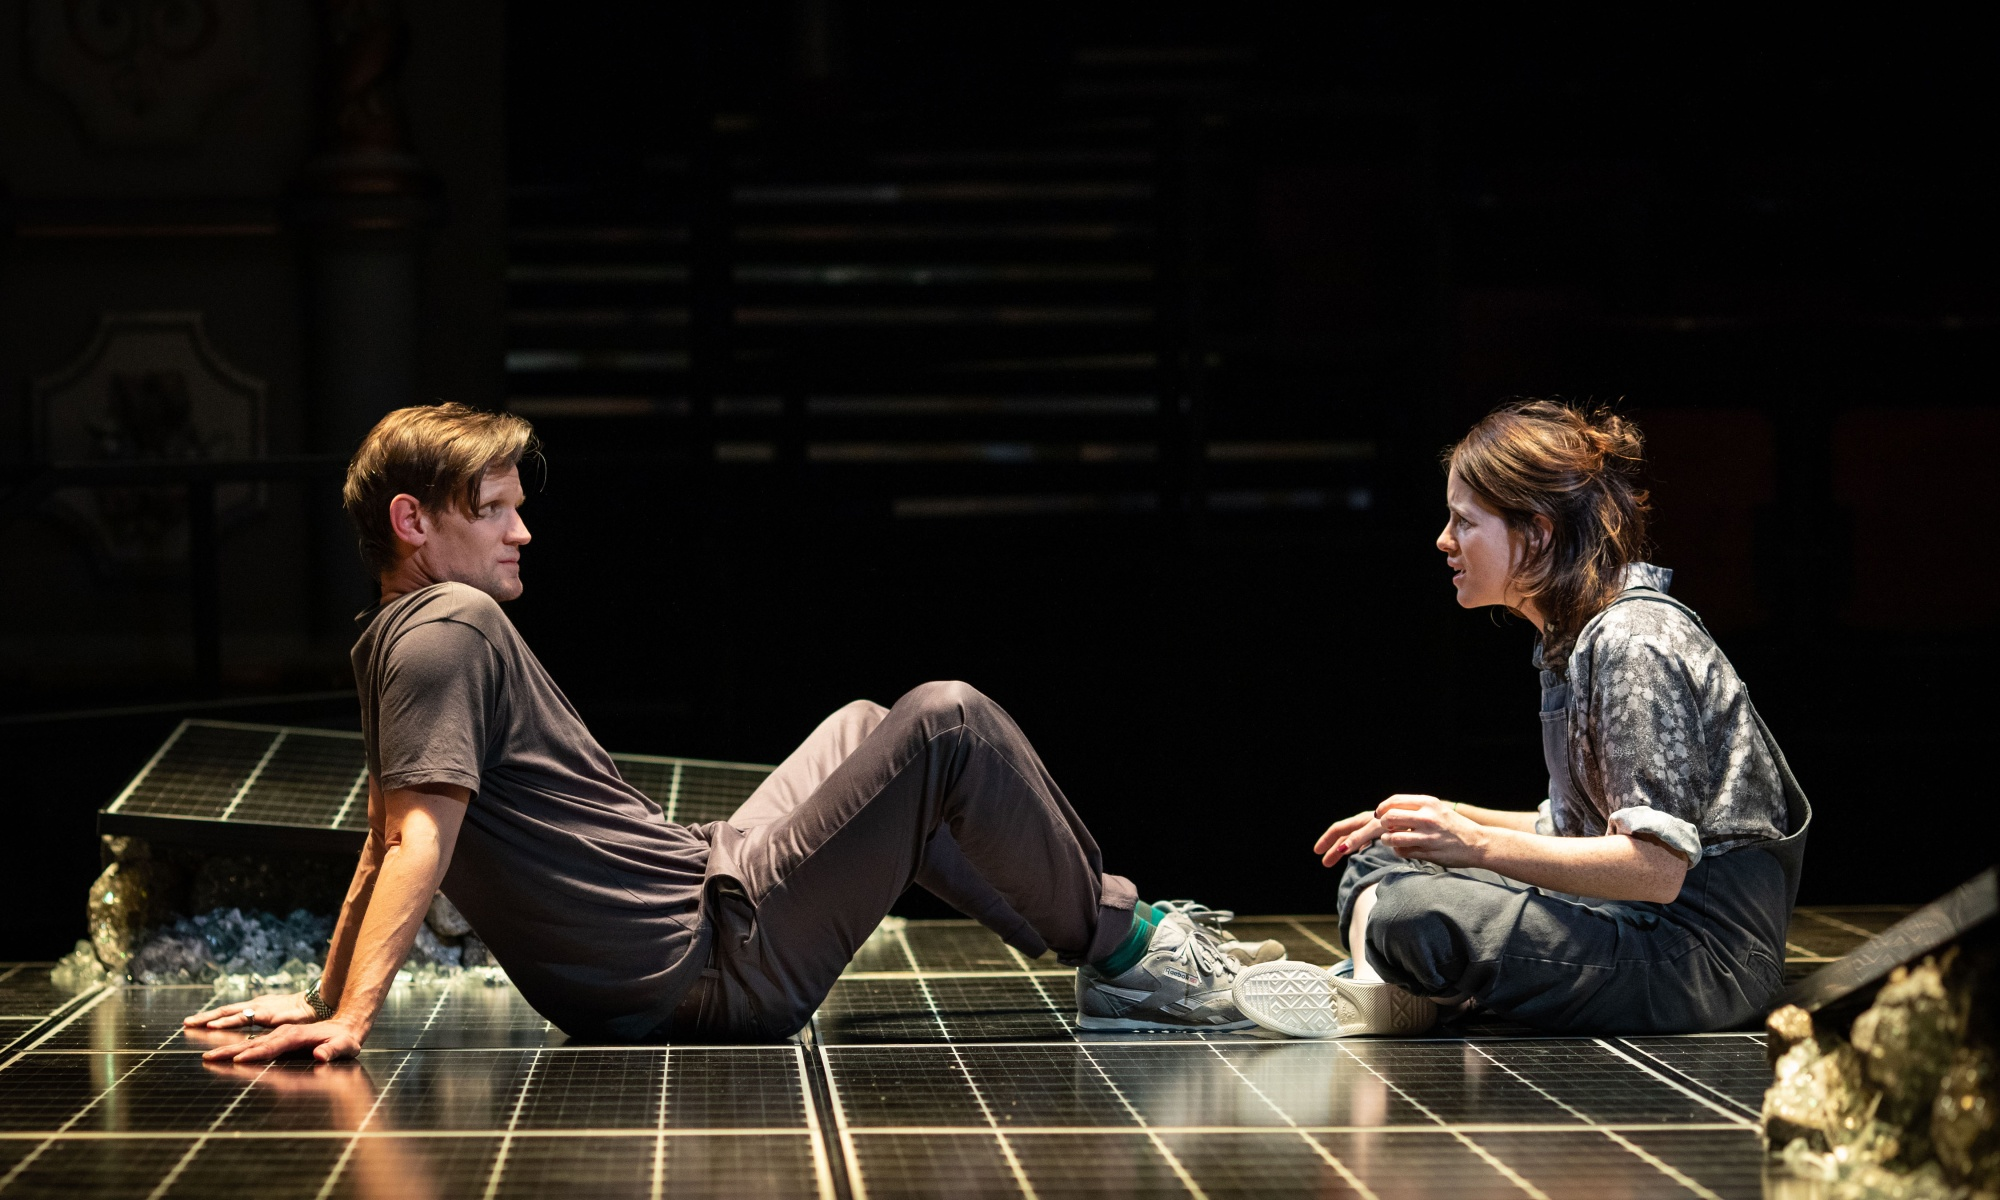 Matt Smith (left) and Clare Foy (right) sit on stage facing each other. The floor of the set has a solar panel-like, striped design.